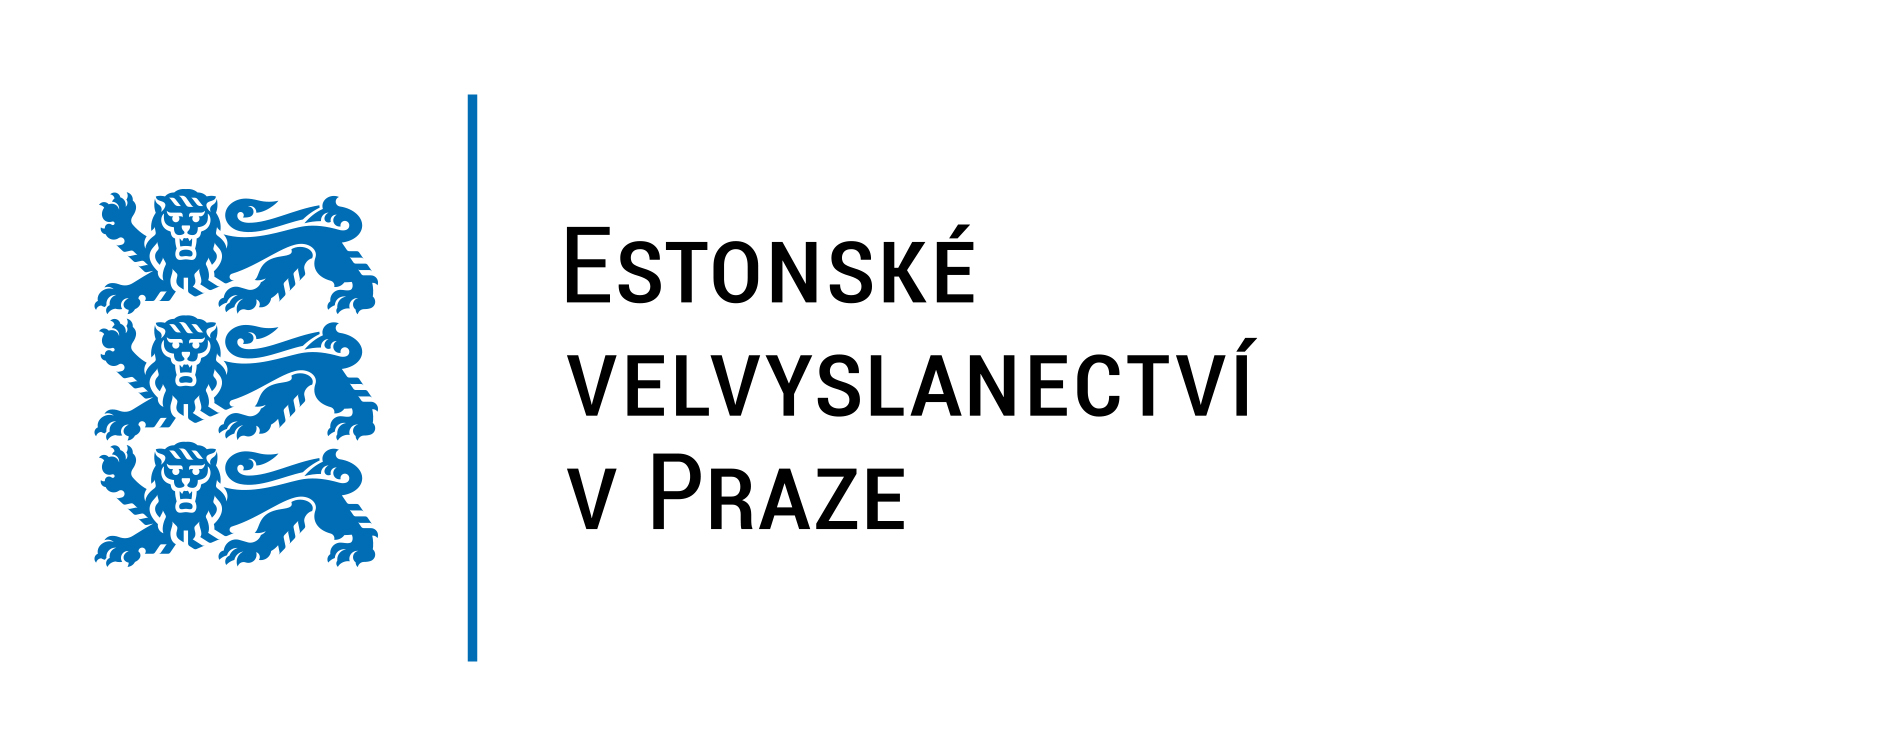 Estonian_embassy_Prague_logo